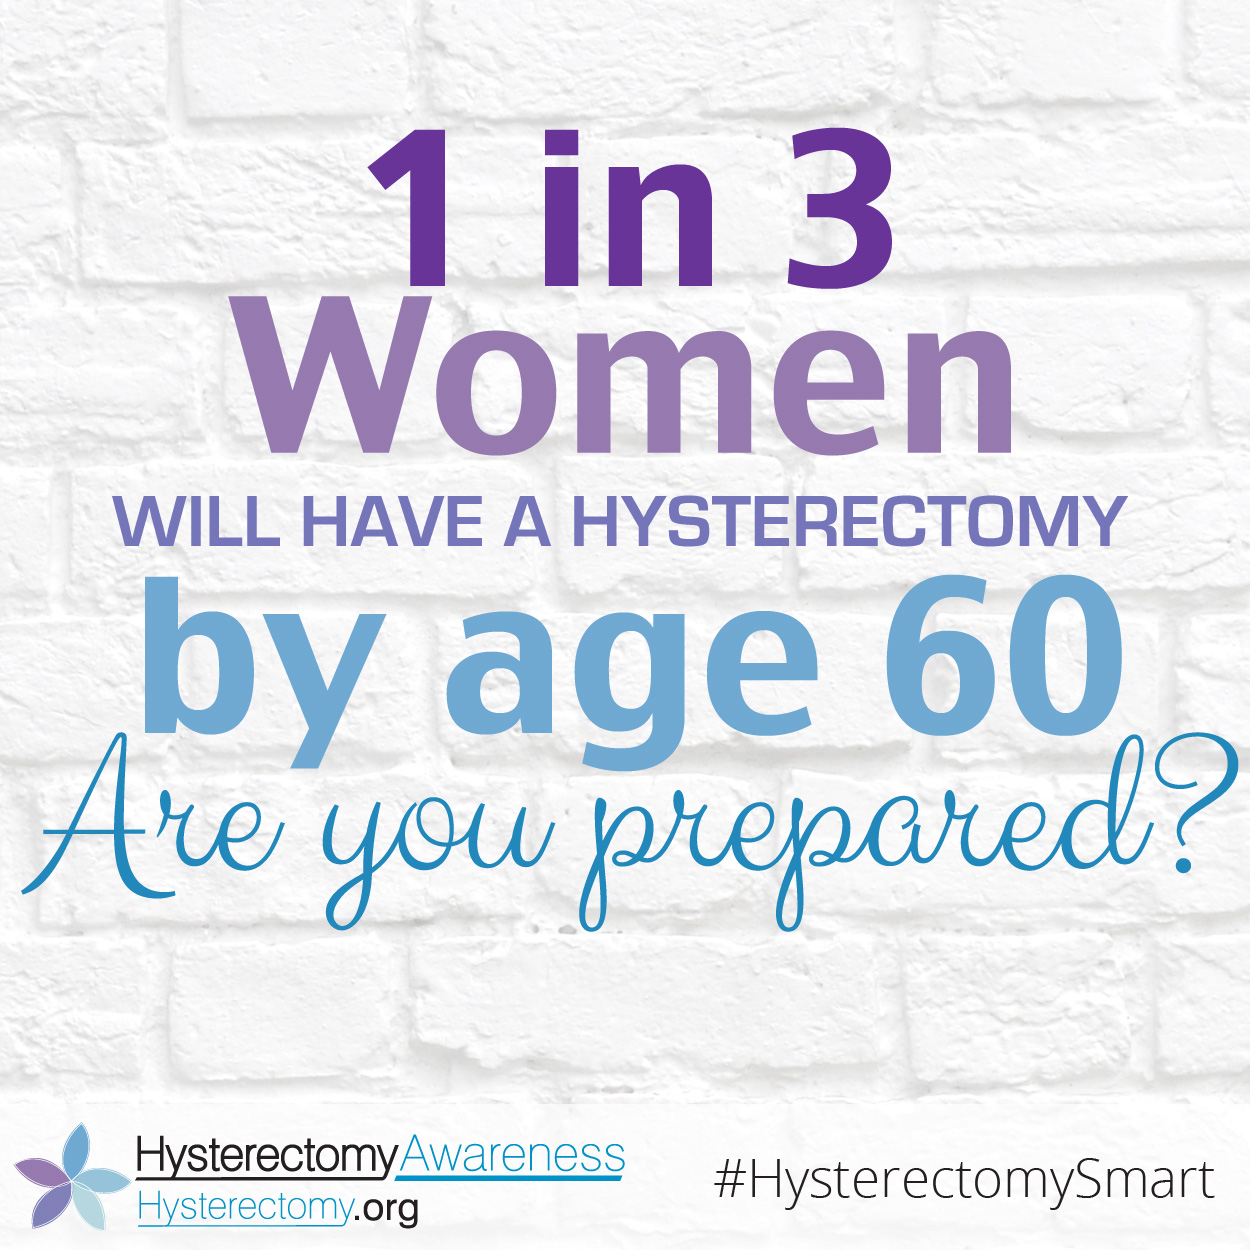 1 in 3 Women Will have a Hysterectomy by Age 60 #HysterectomySmart